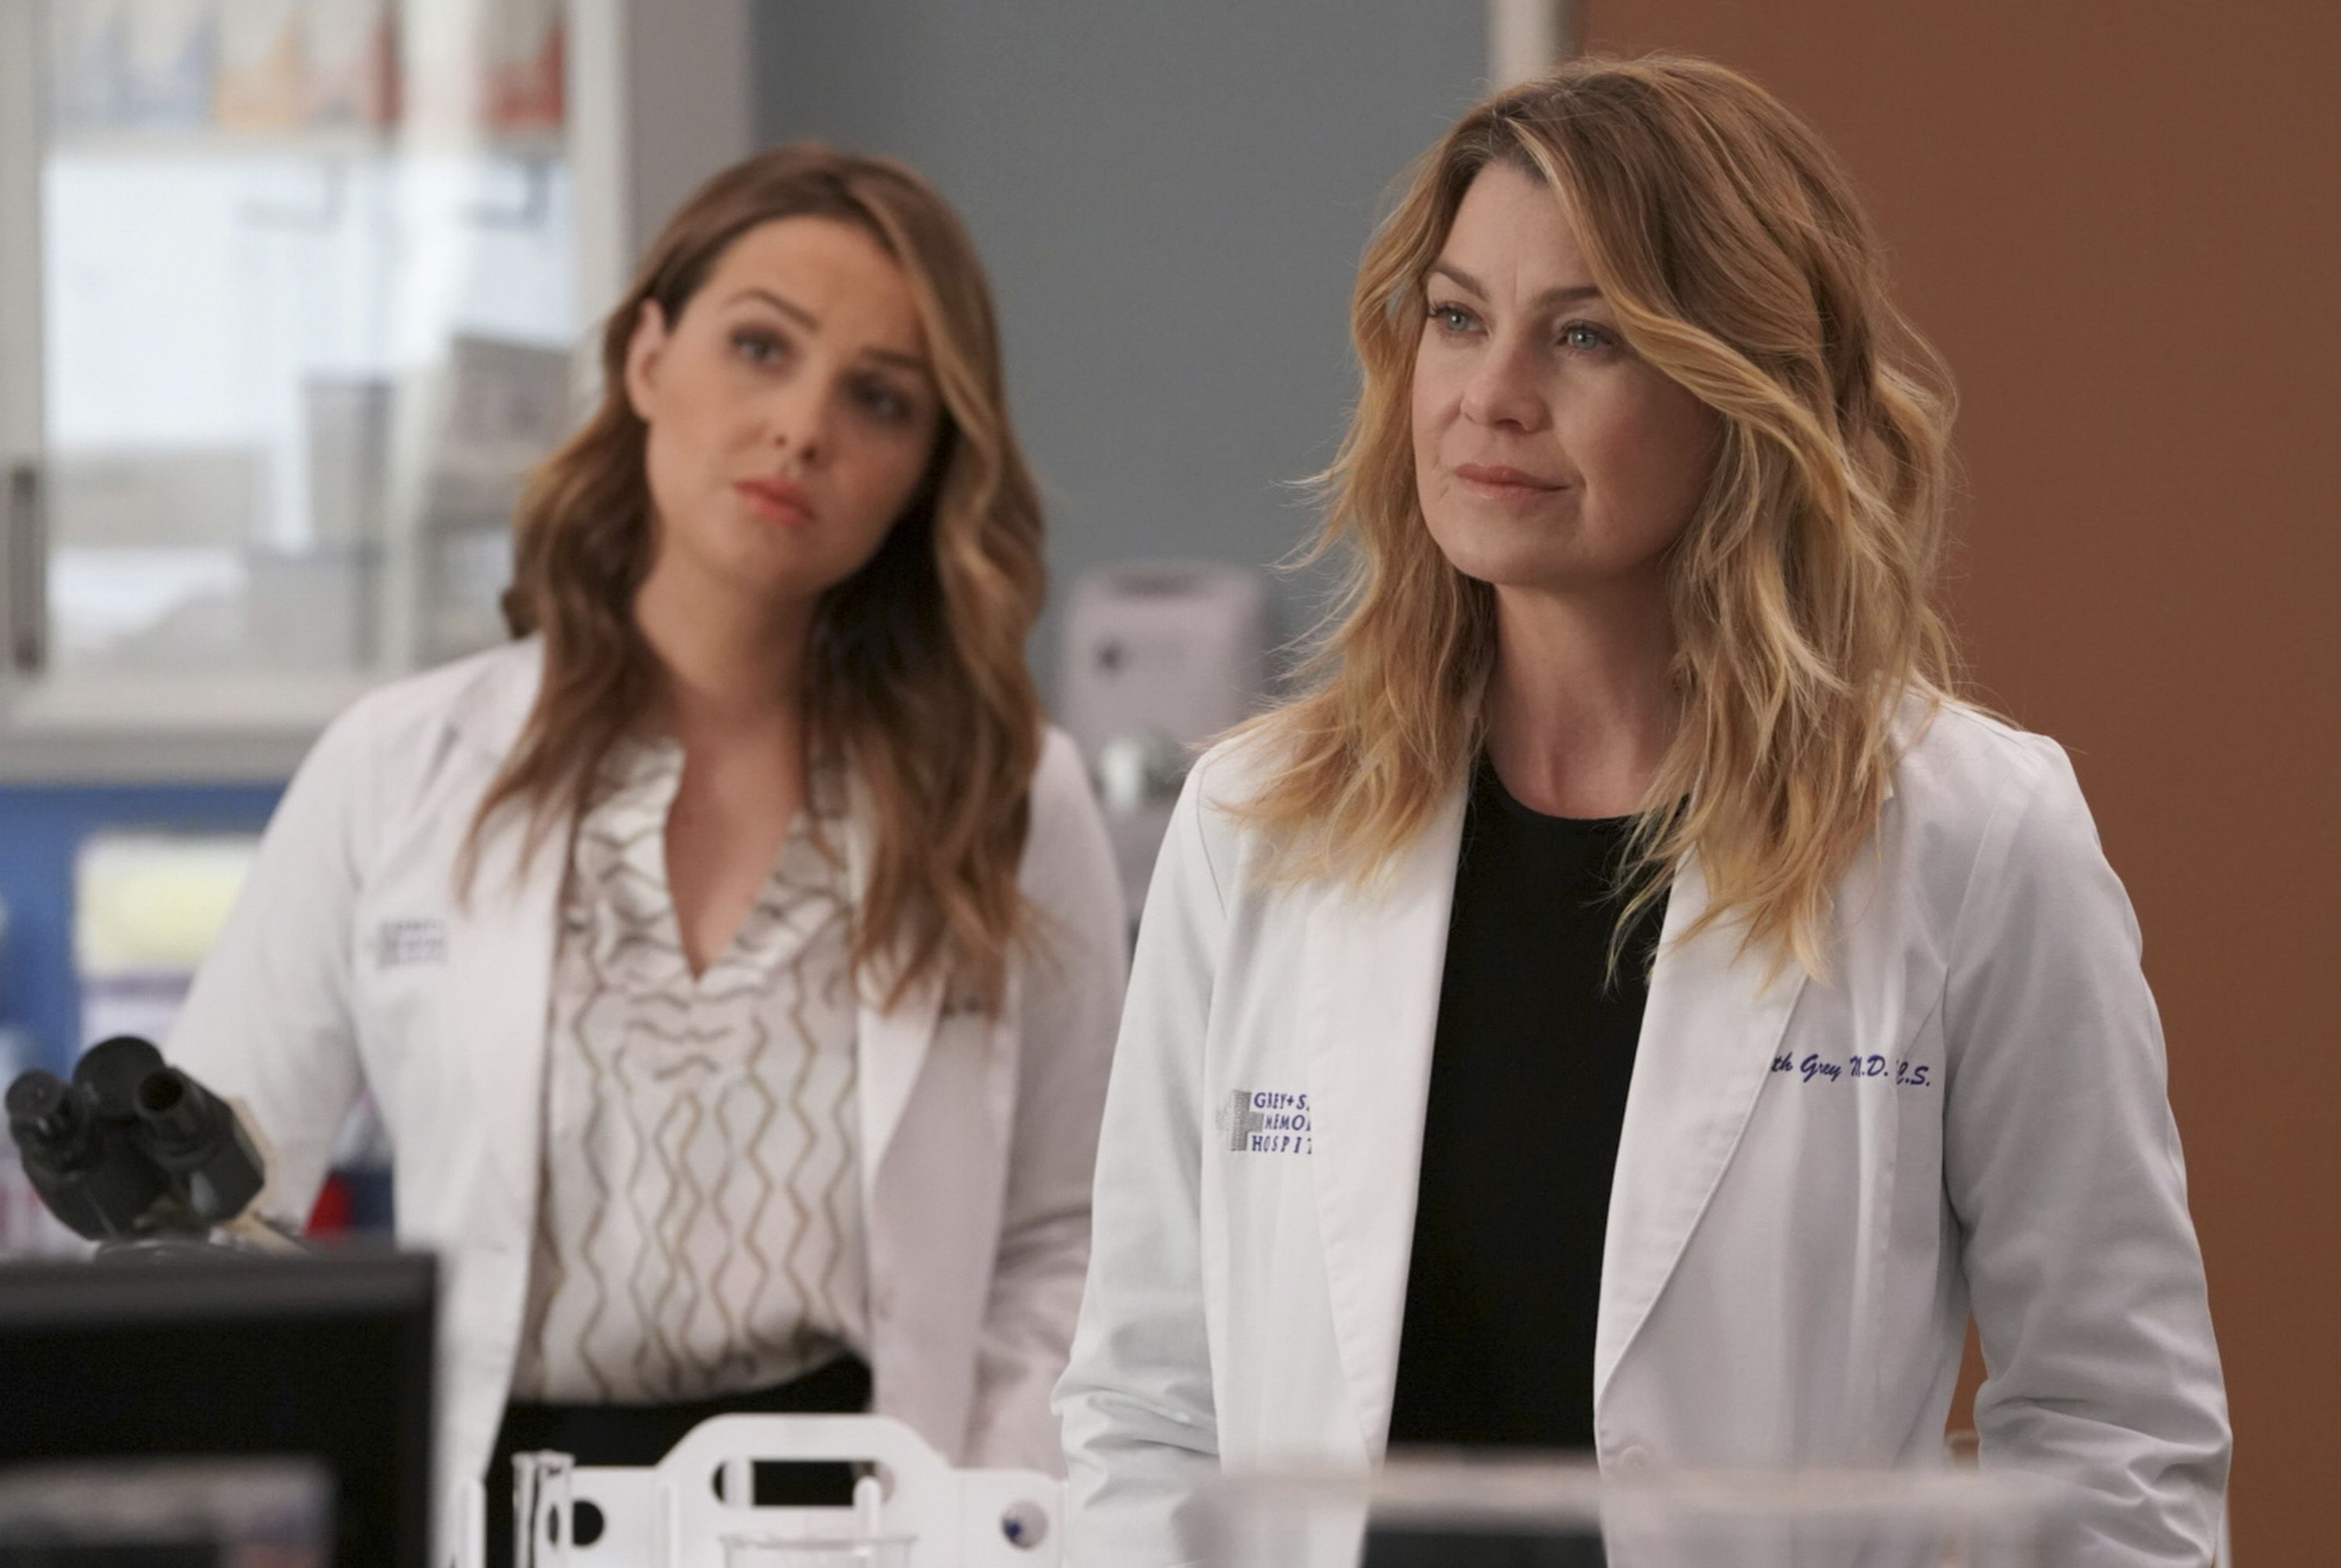 The 'Grey's Anatomy' Showrunner Said There Will Be a Major Cliffhanger in Tonight's Episode